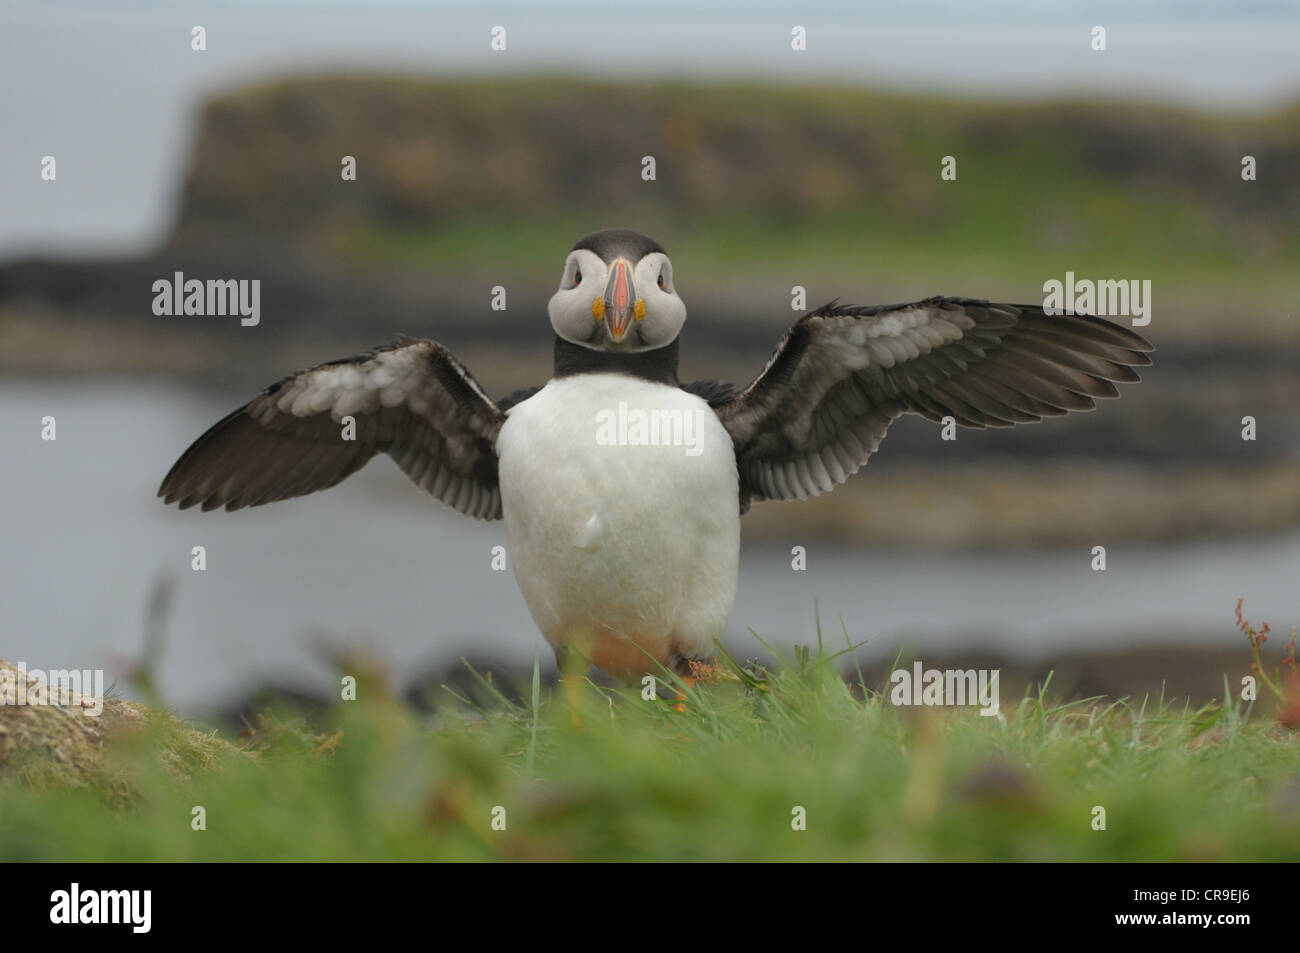 Puffin, Fratercula arctica, with wings spread. - Stock Image